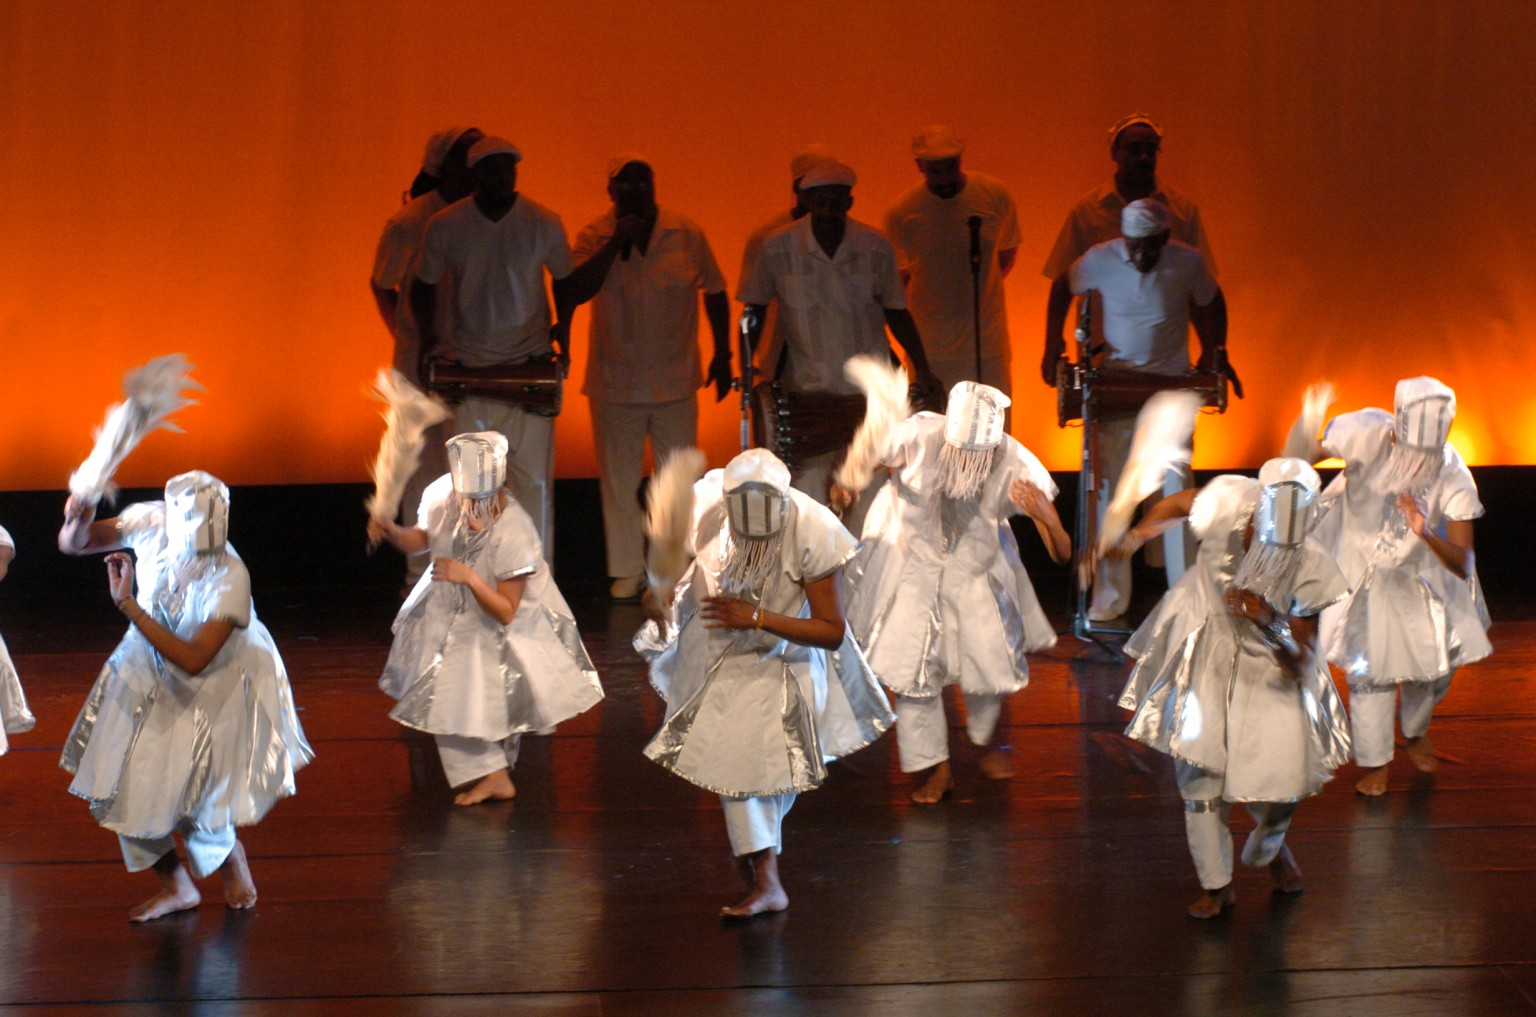 DANCE GROUP DURING A PERFORMANCE